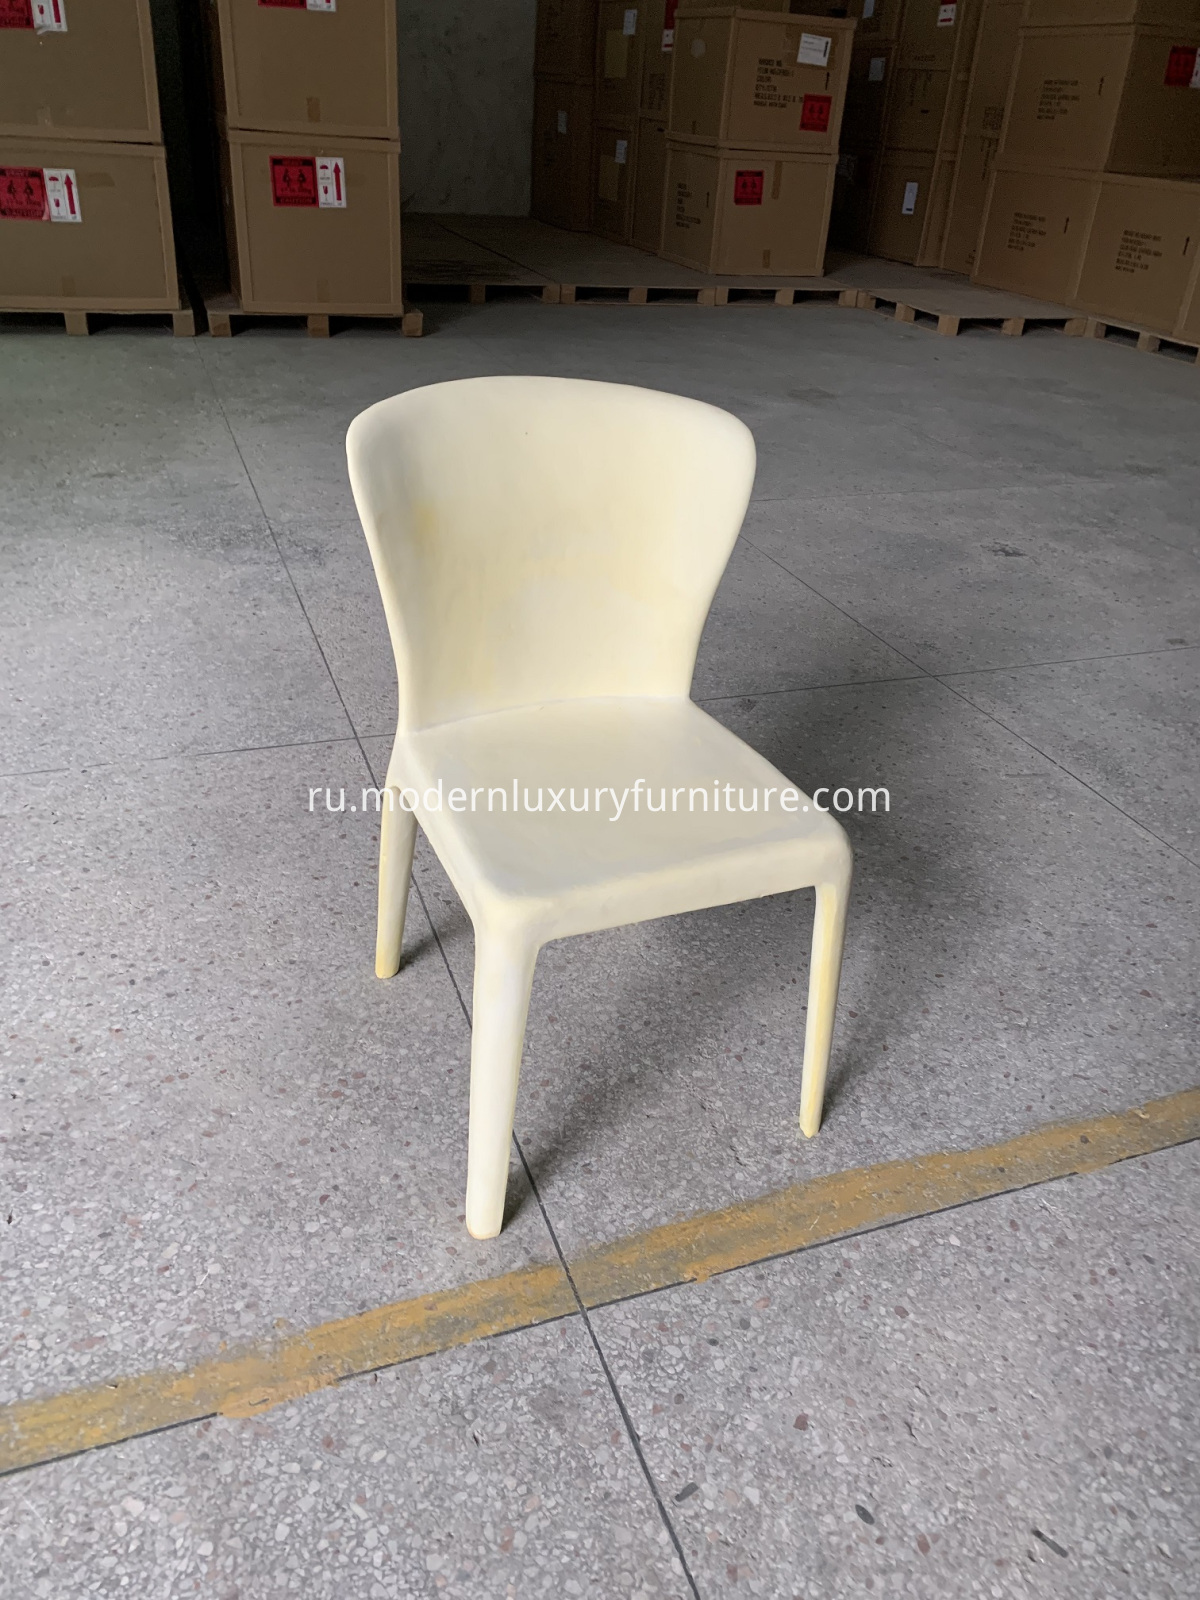 Pu injection foam of hola chair